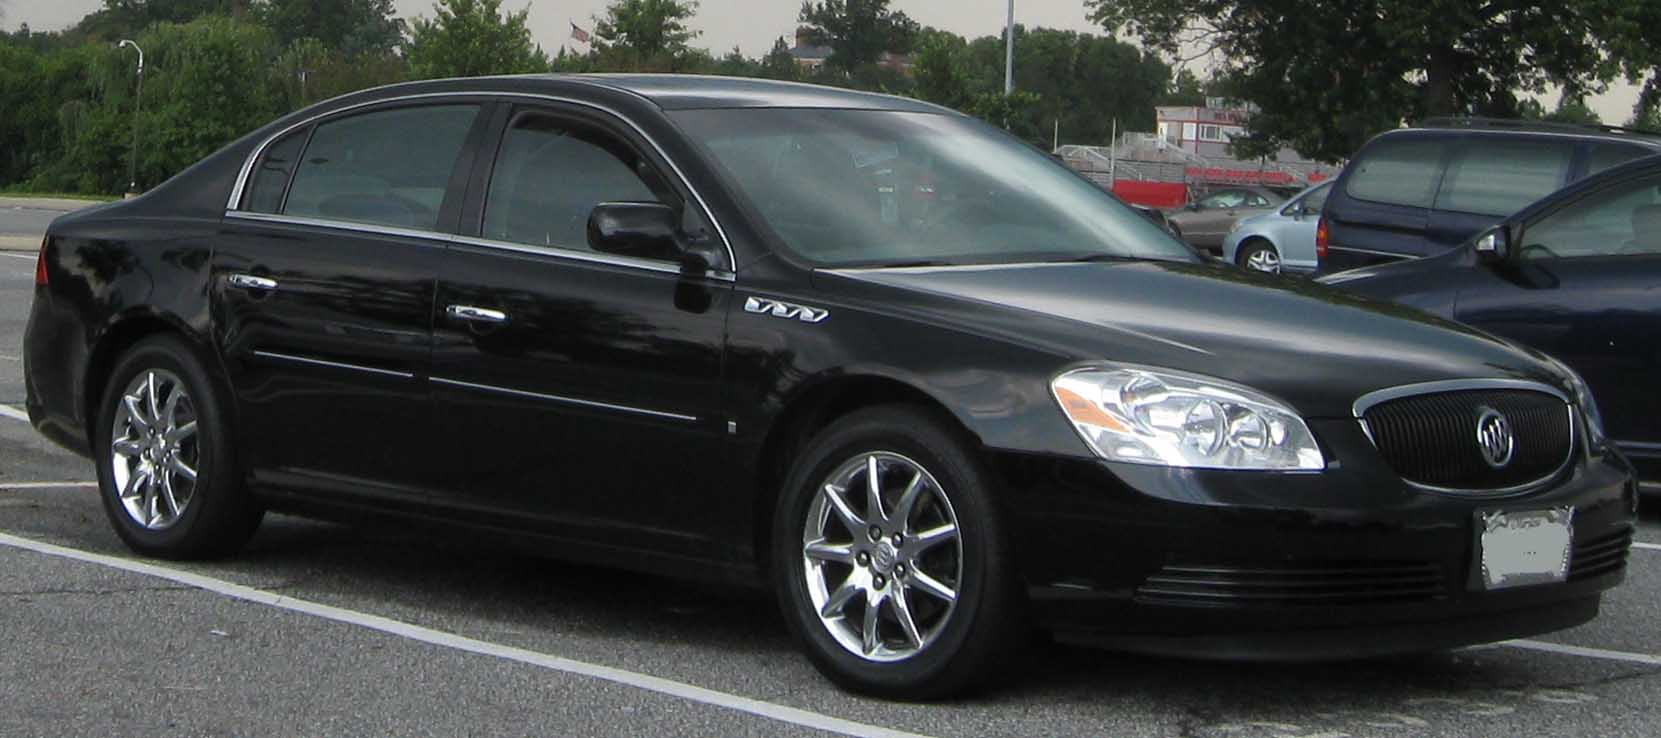 2007 Buick Lucerne Black >> 2008 Buick Lucerne Information And Photos Zombiedrive